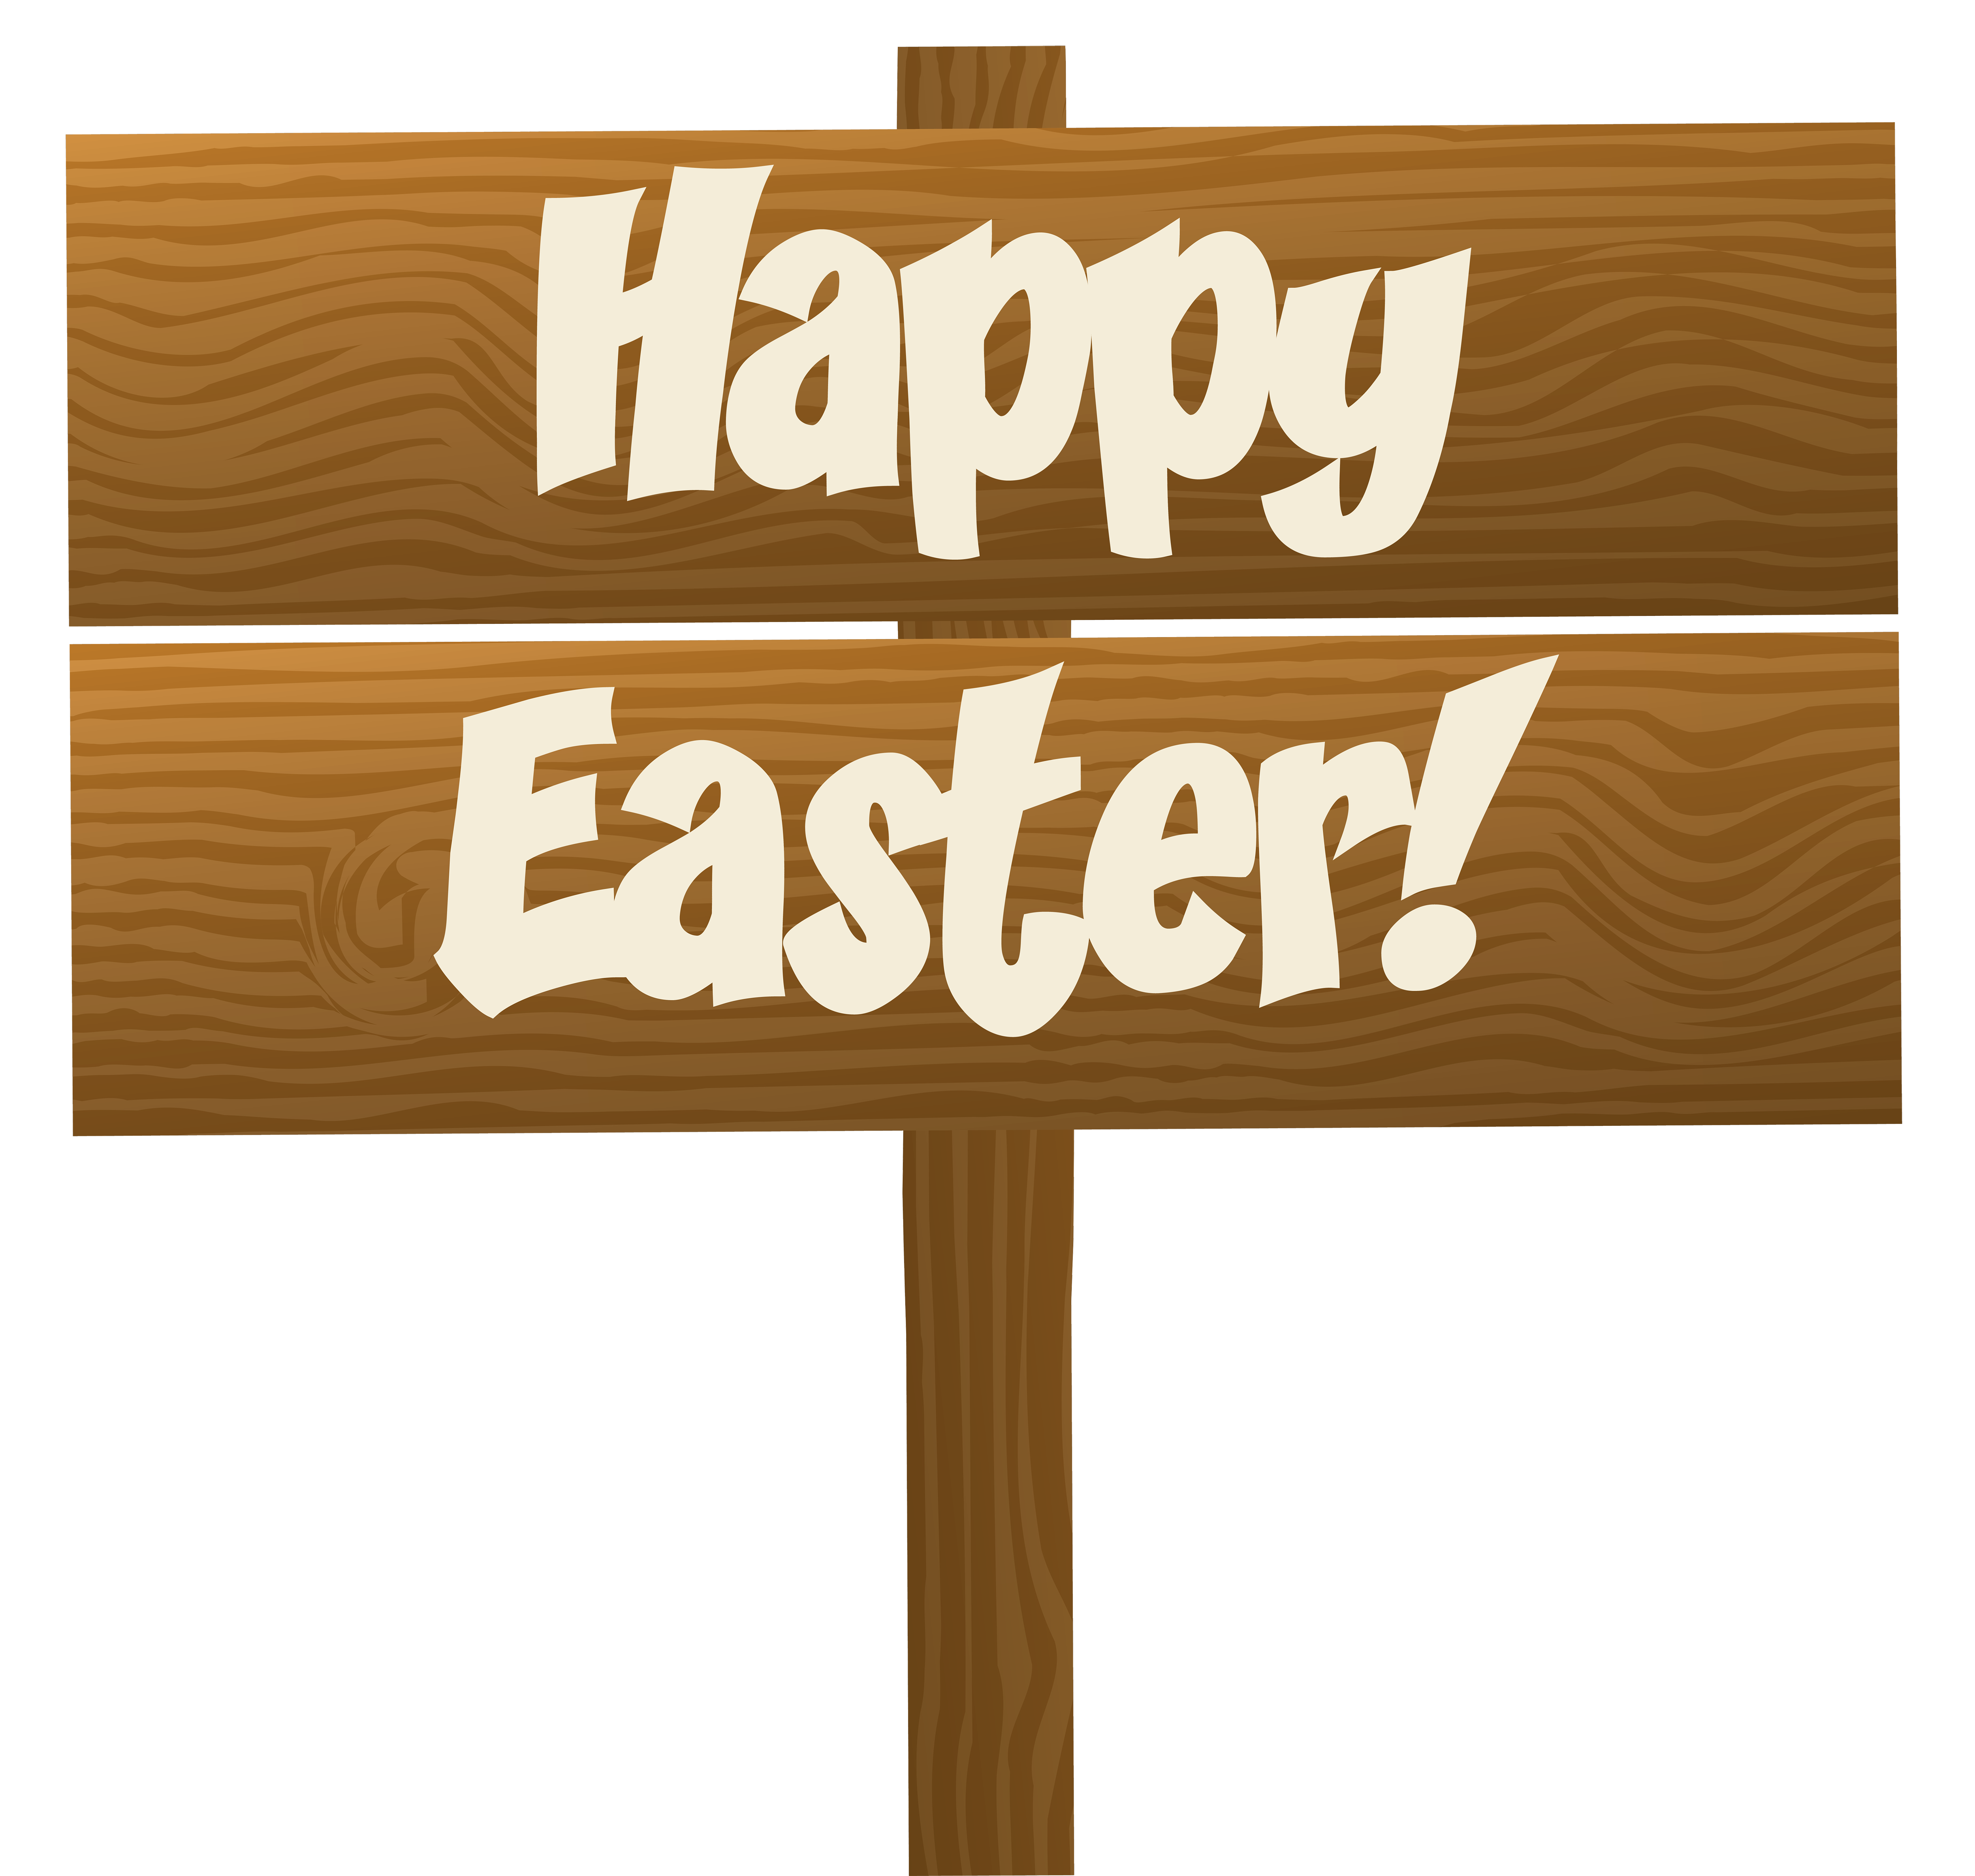 Clipart easter sign. Happy wooden transparent png